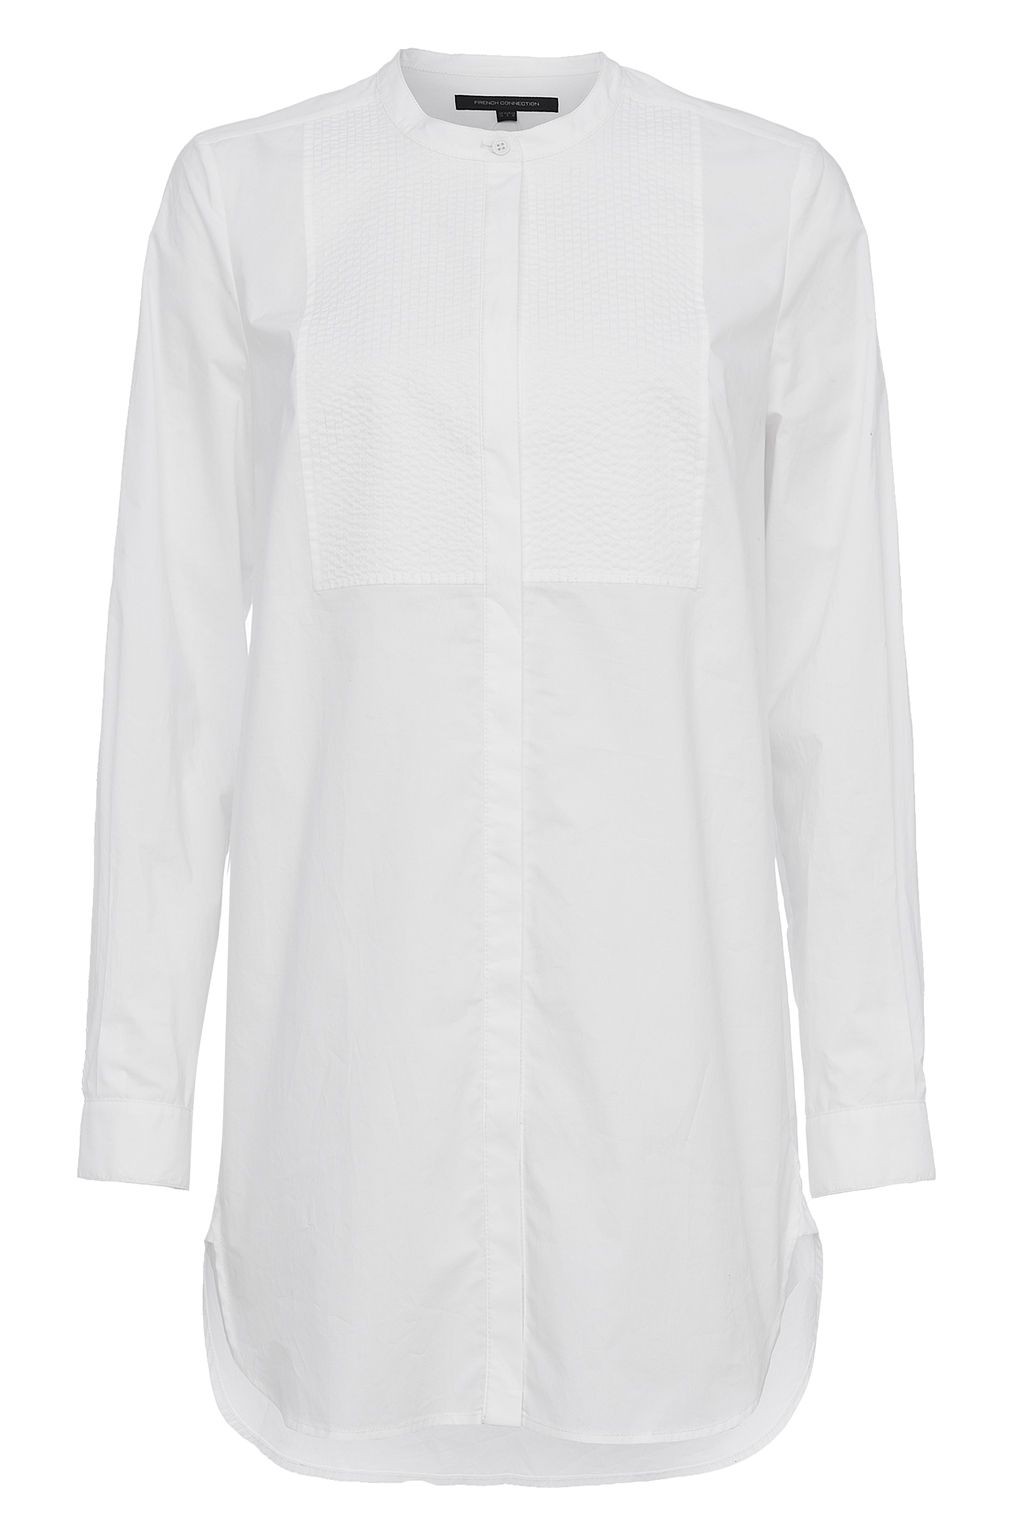 French Connection Smithson Cotton Bib Front Longline Shirt, White